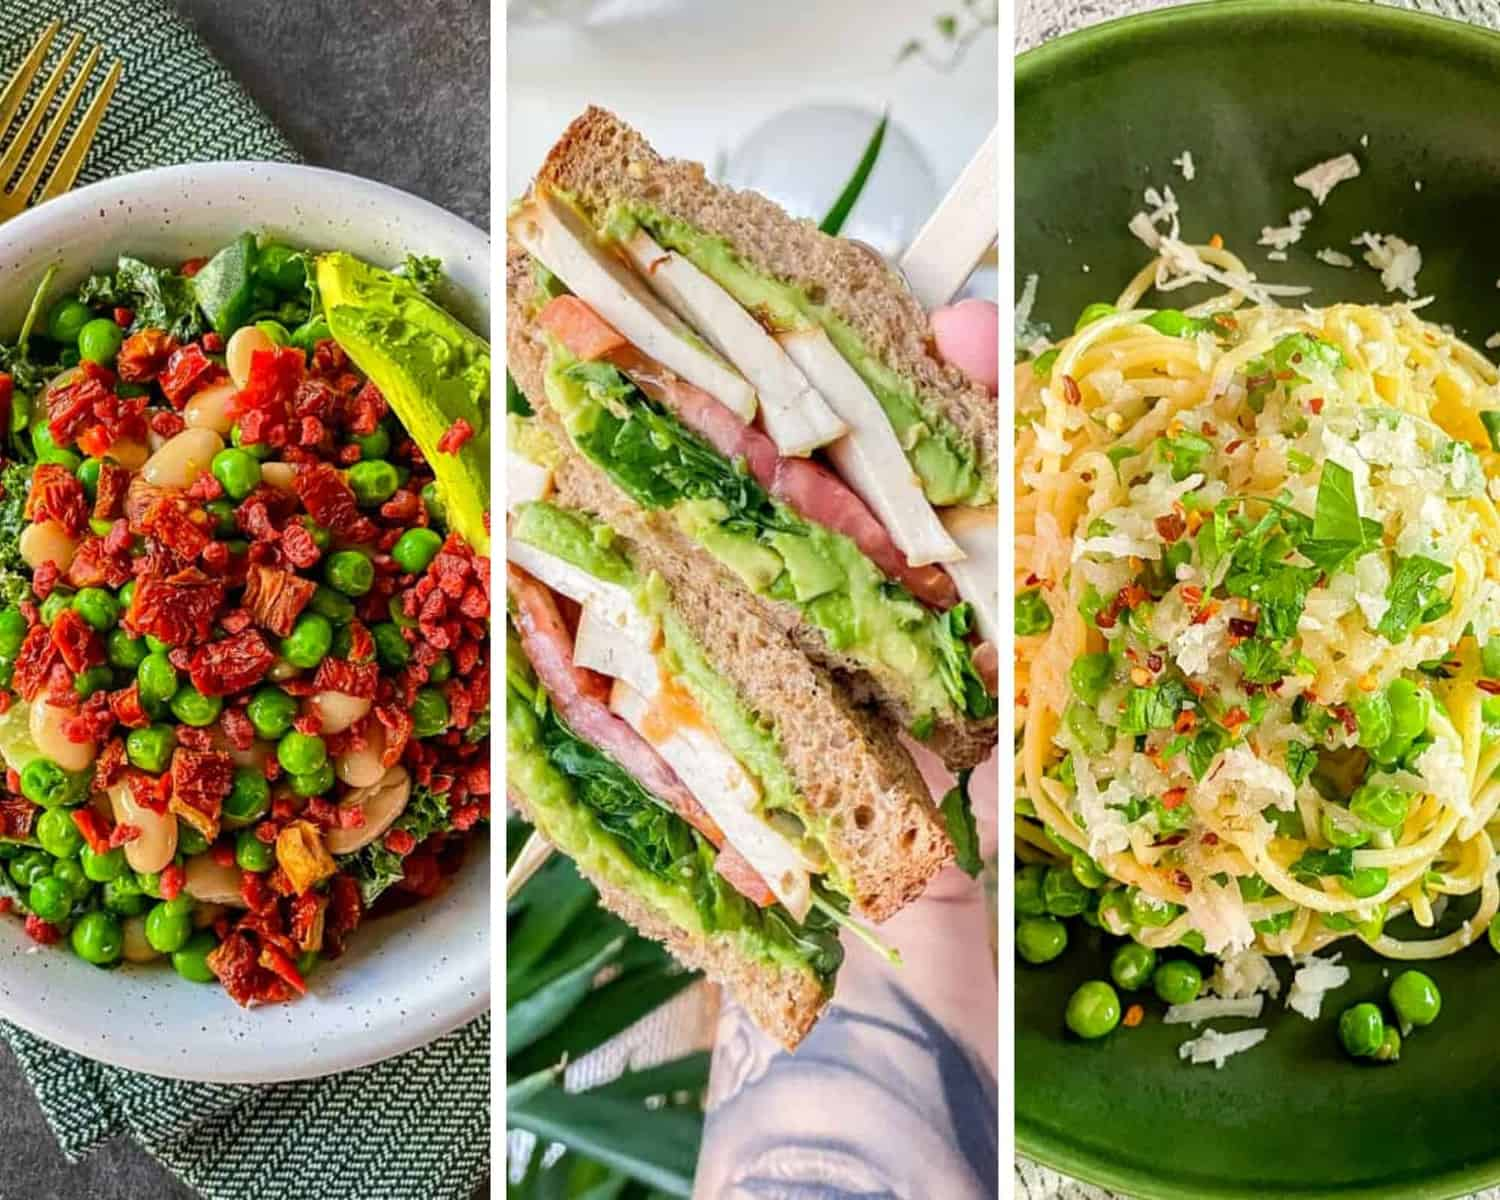 Single Vegan Meals For One Breakfast Lunch Dinner The Edgy Veg